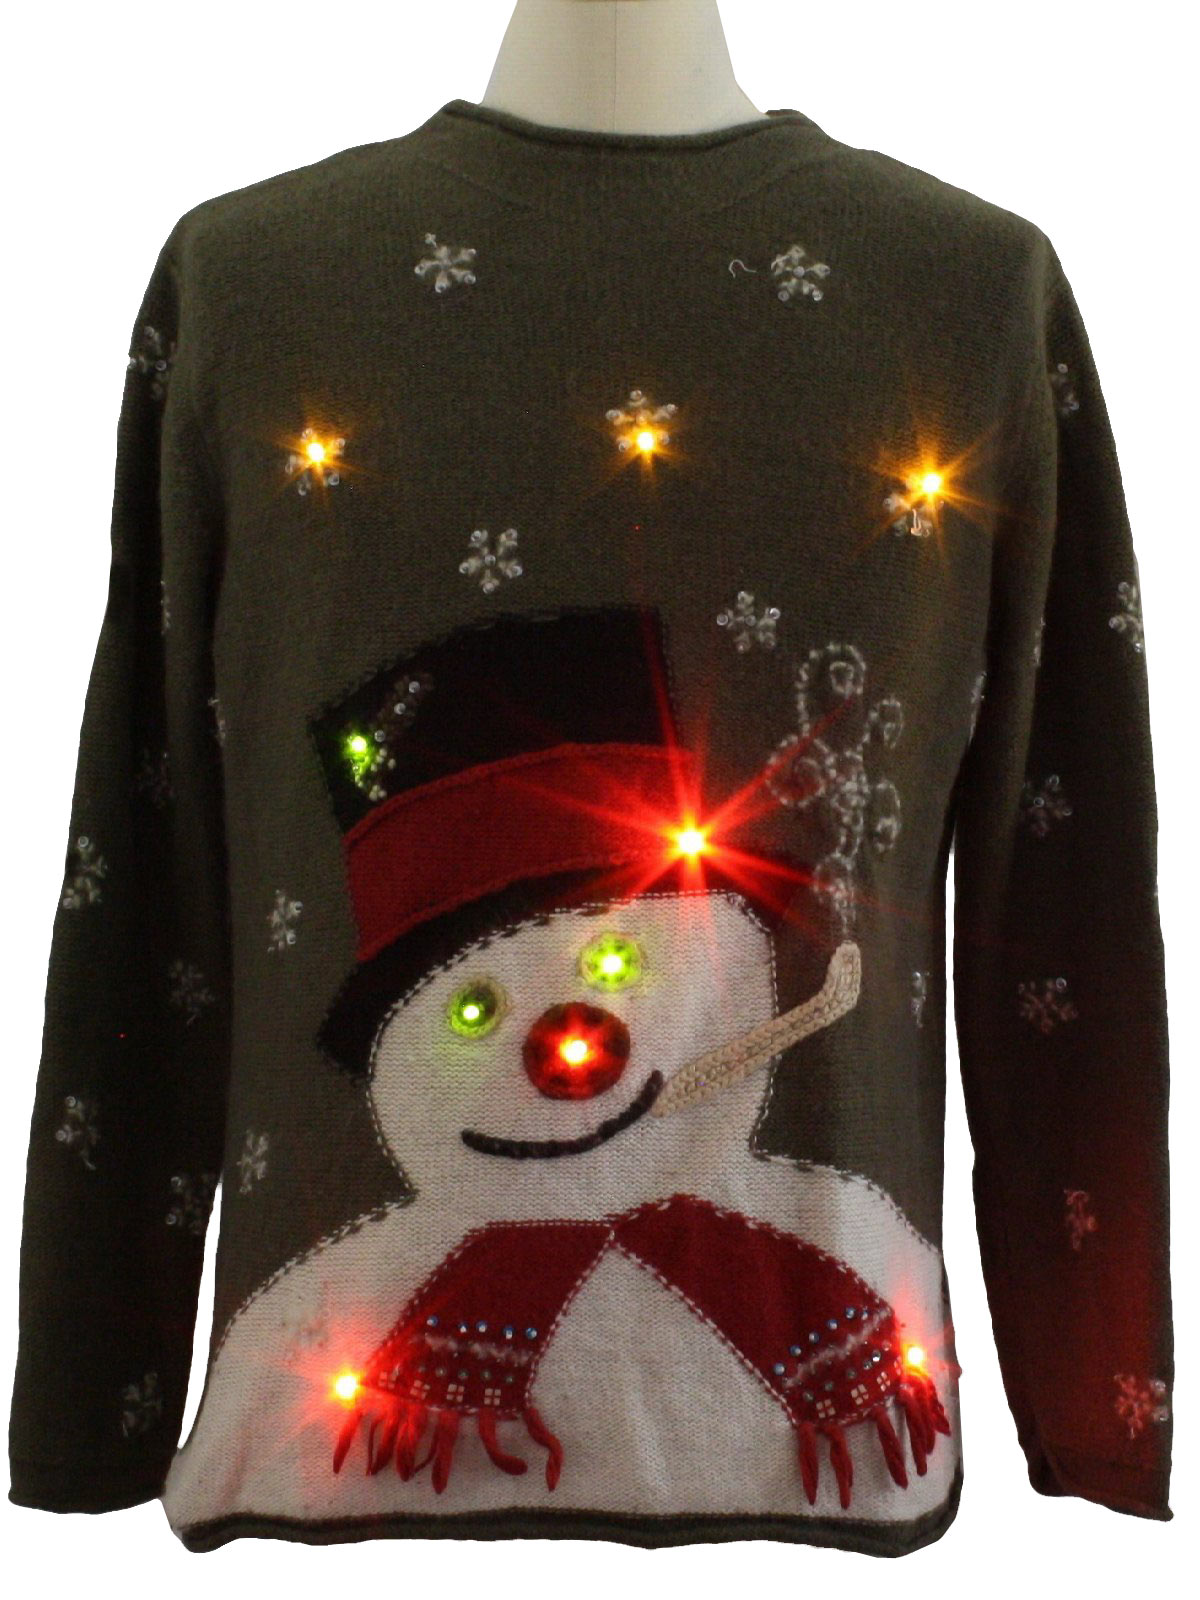 Susan Bristol Unisex Lightup Ugly Christmas Sweater $86.00 Not in stock. Item No. 236923